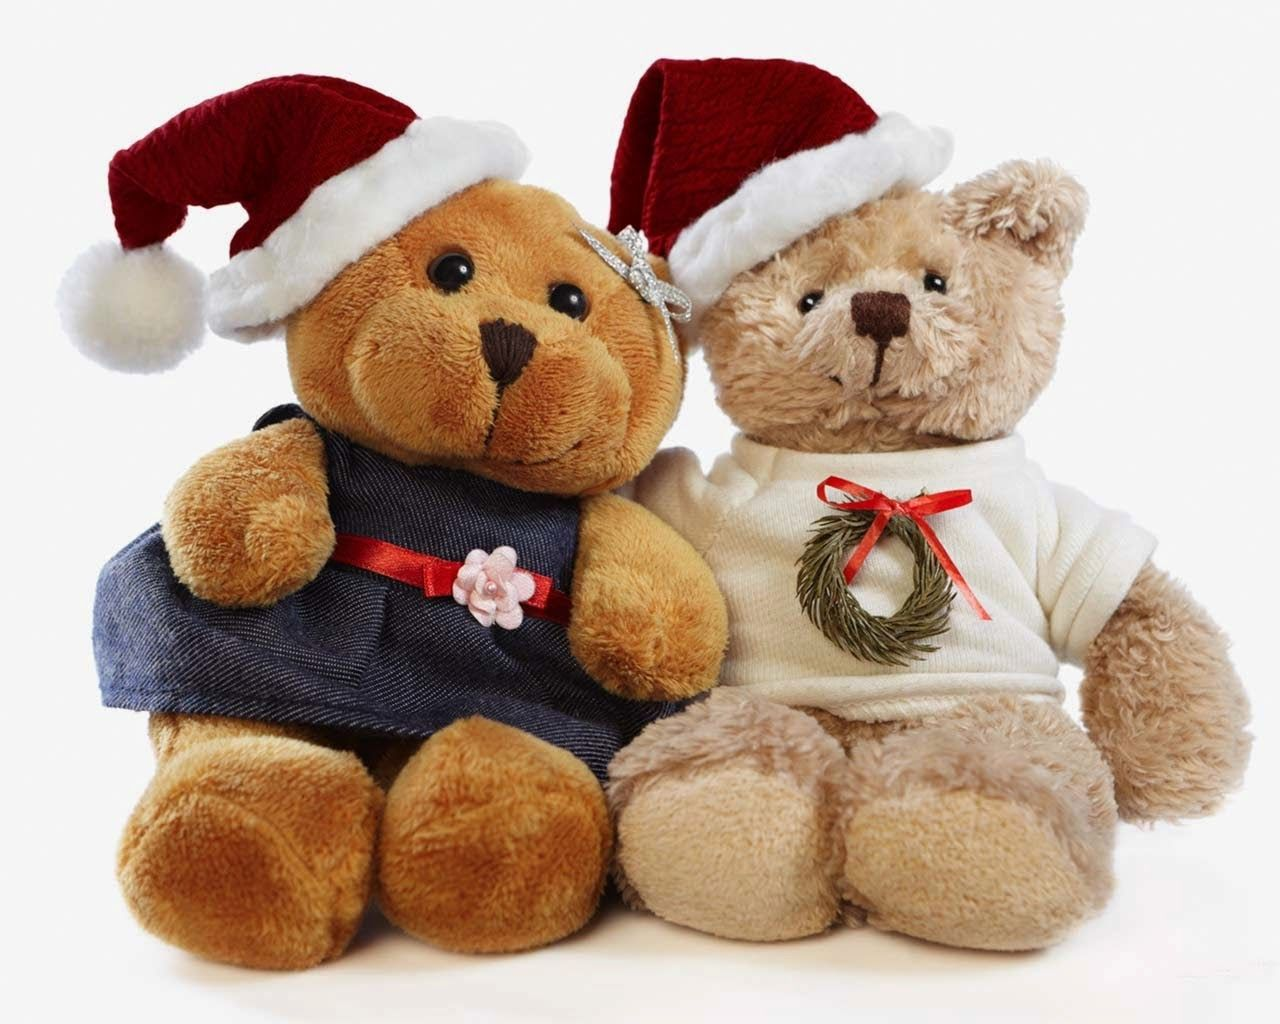 50 happy teddy bear day hd images pictures photos wallpaper online teddy bear is a sweet gift which is common now a days teddy bears can easily be purchased from markets white and brown colour teddy bears are common thecheapjerseys Image collections